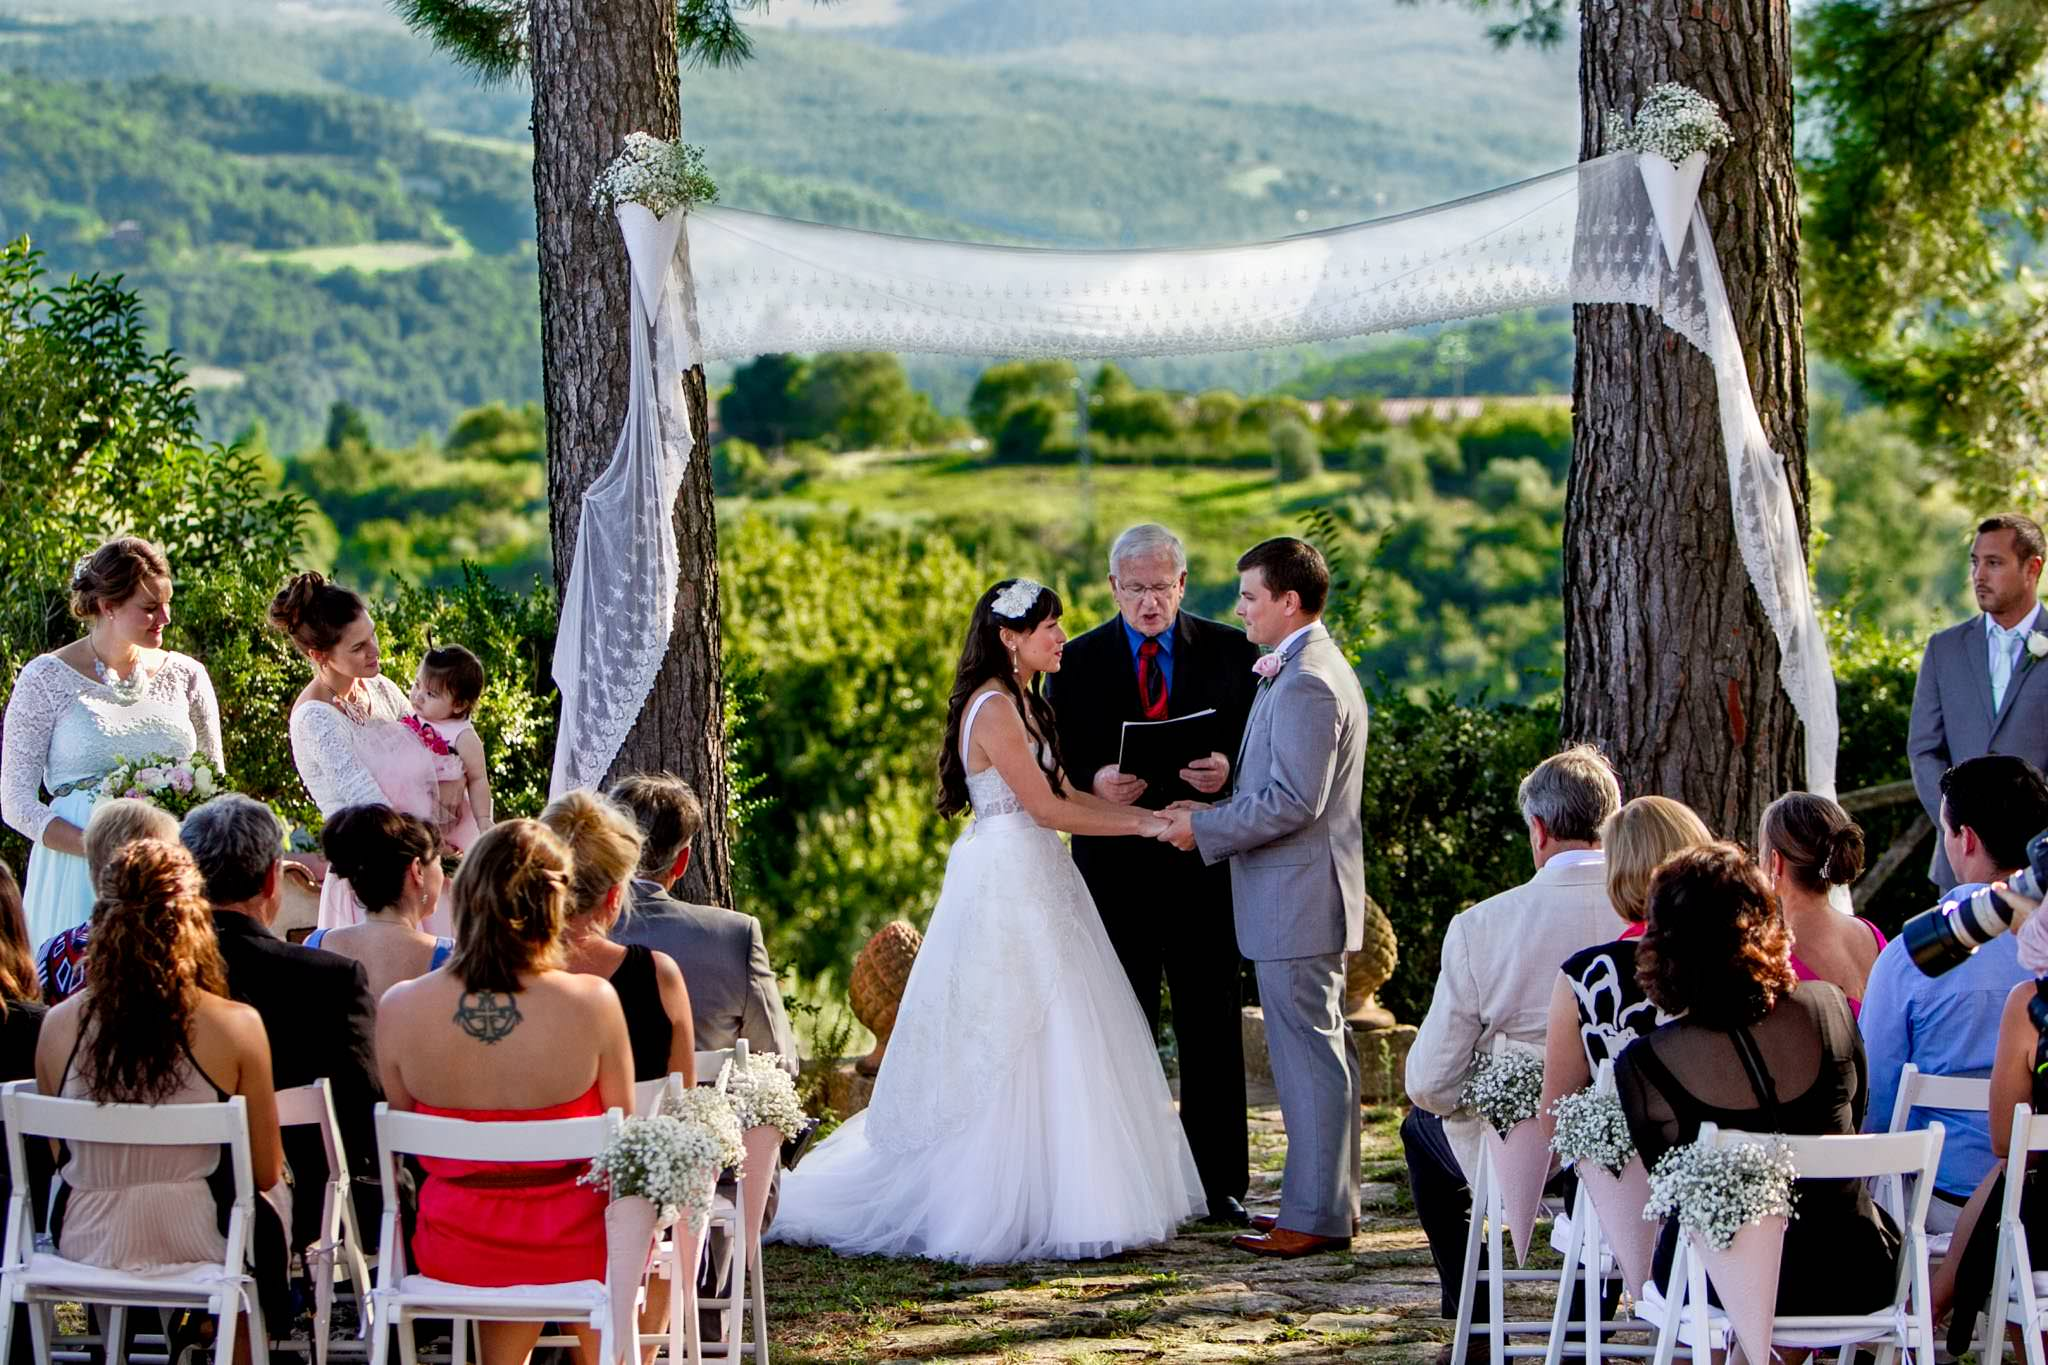 Bride and Groom sharing vows in wedding ceremony at Villa Tre Grazie in Umbria Italy near Todi